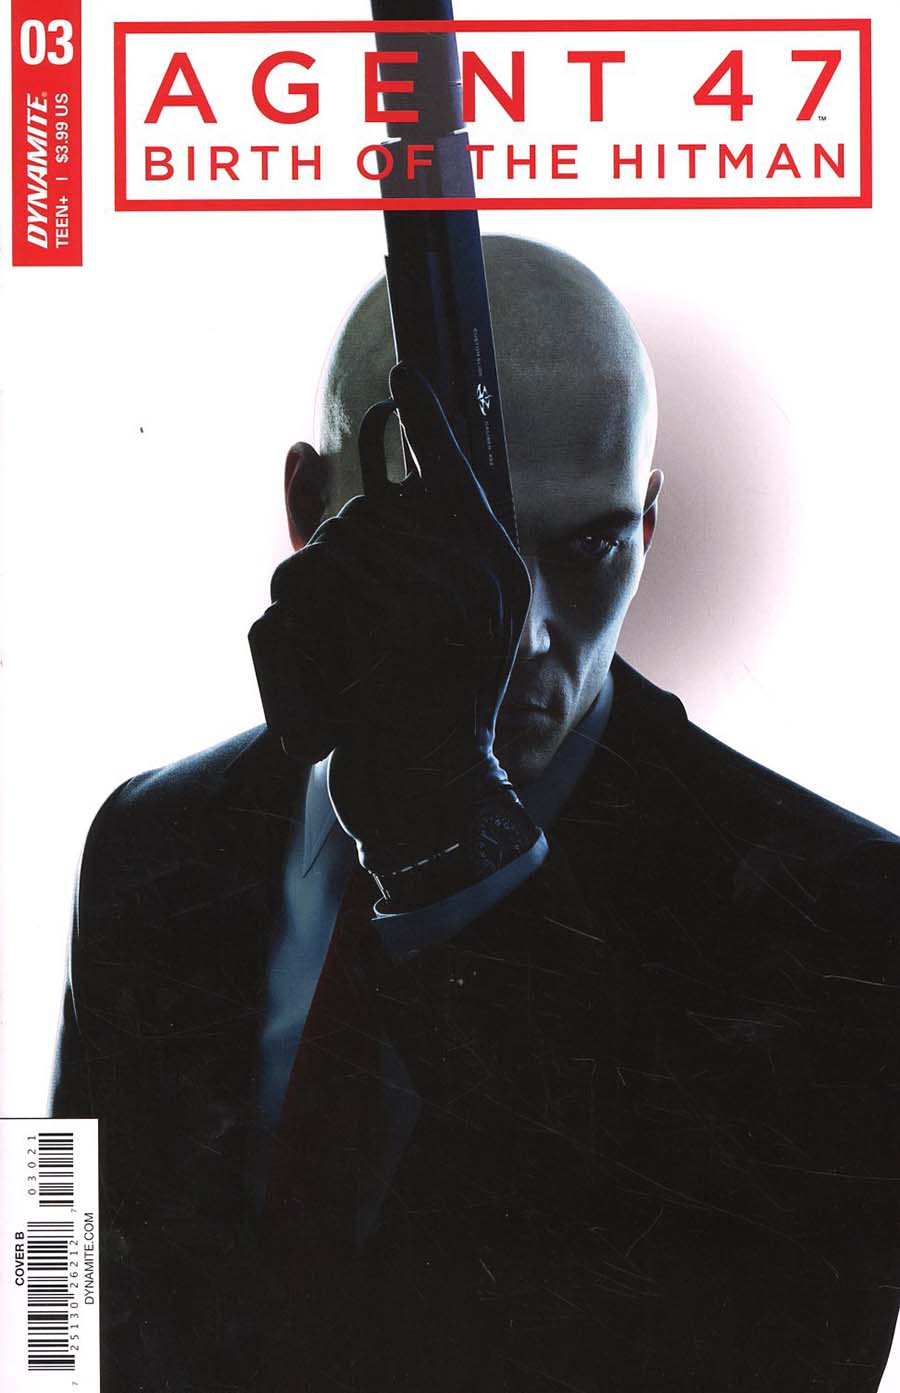 Agent 47 Birth Of The Hitman #3 Cover B Variant Gameplay Cover